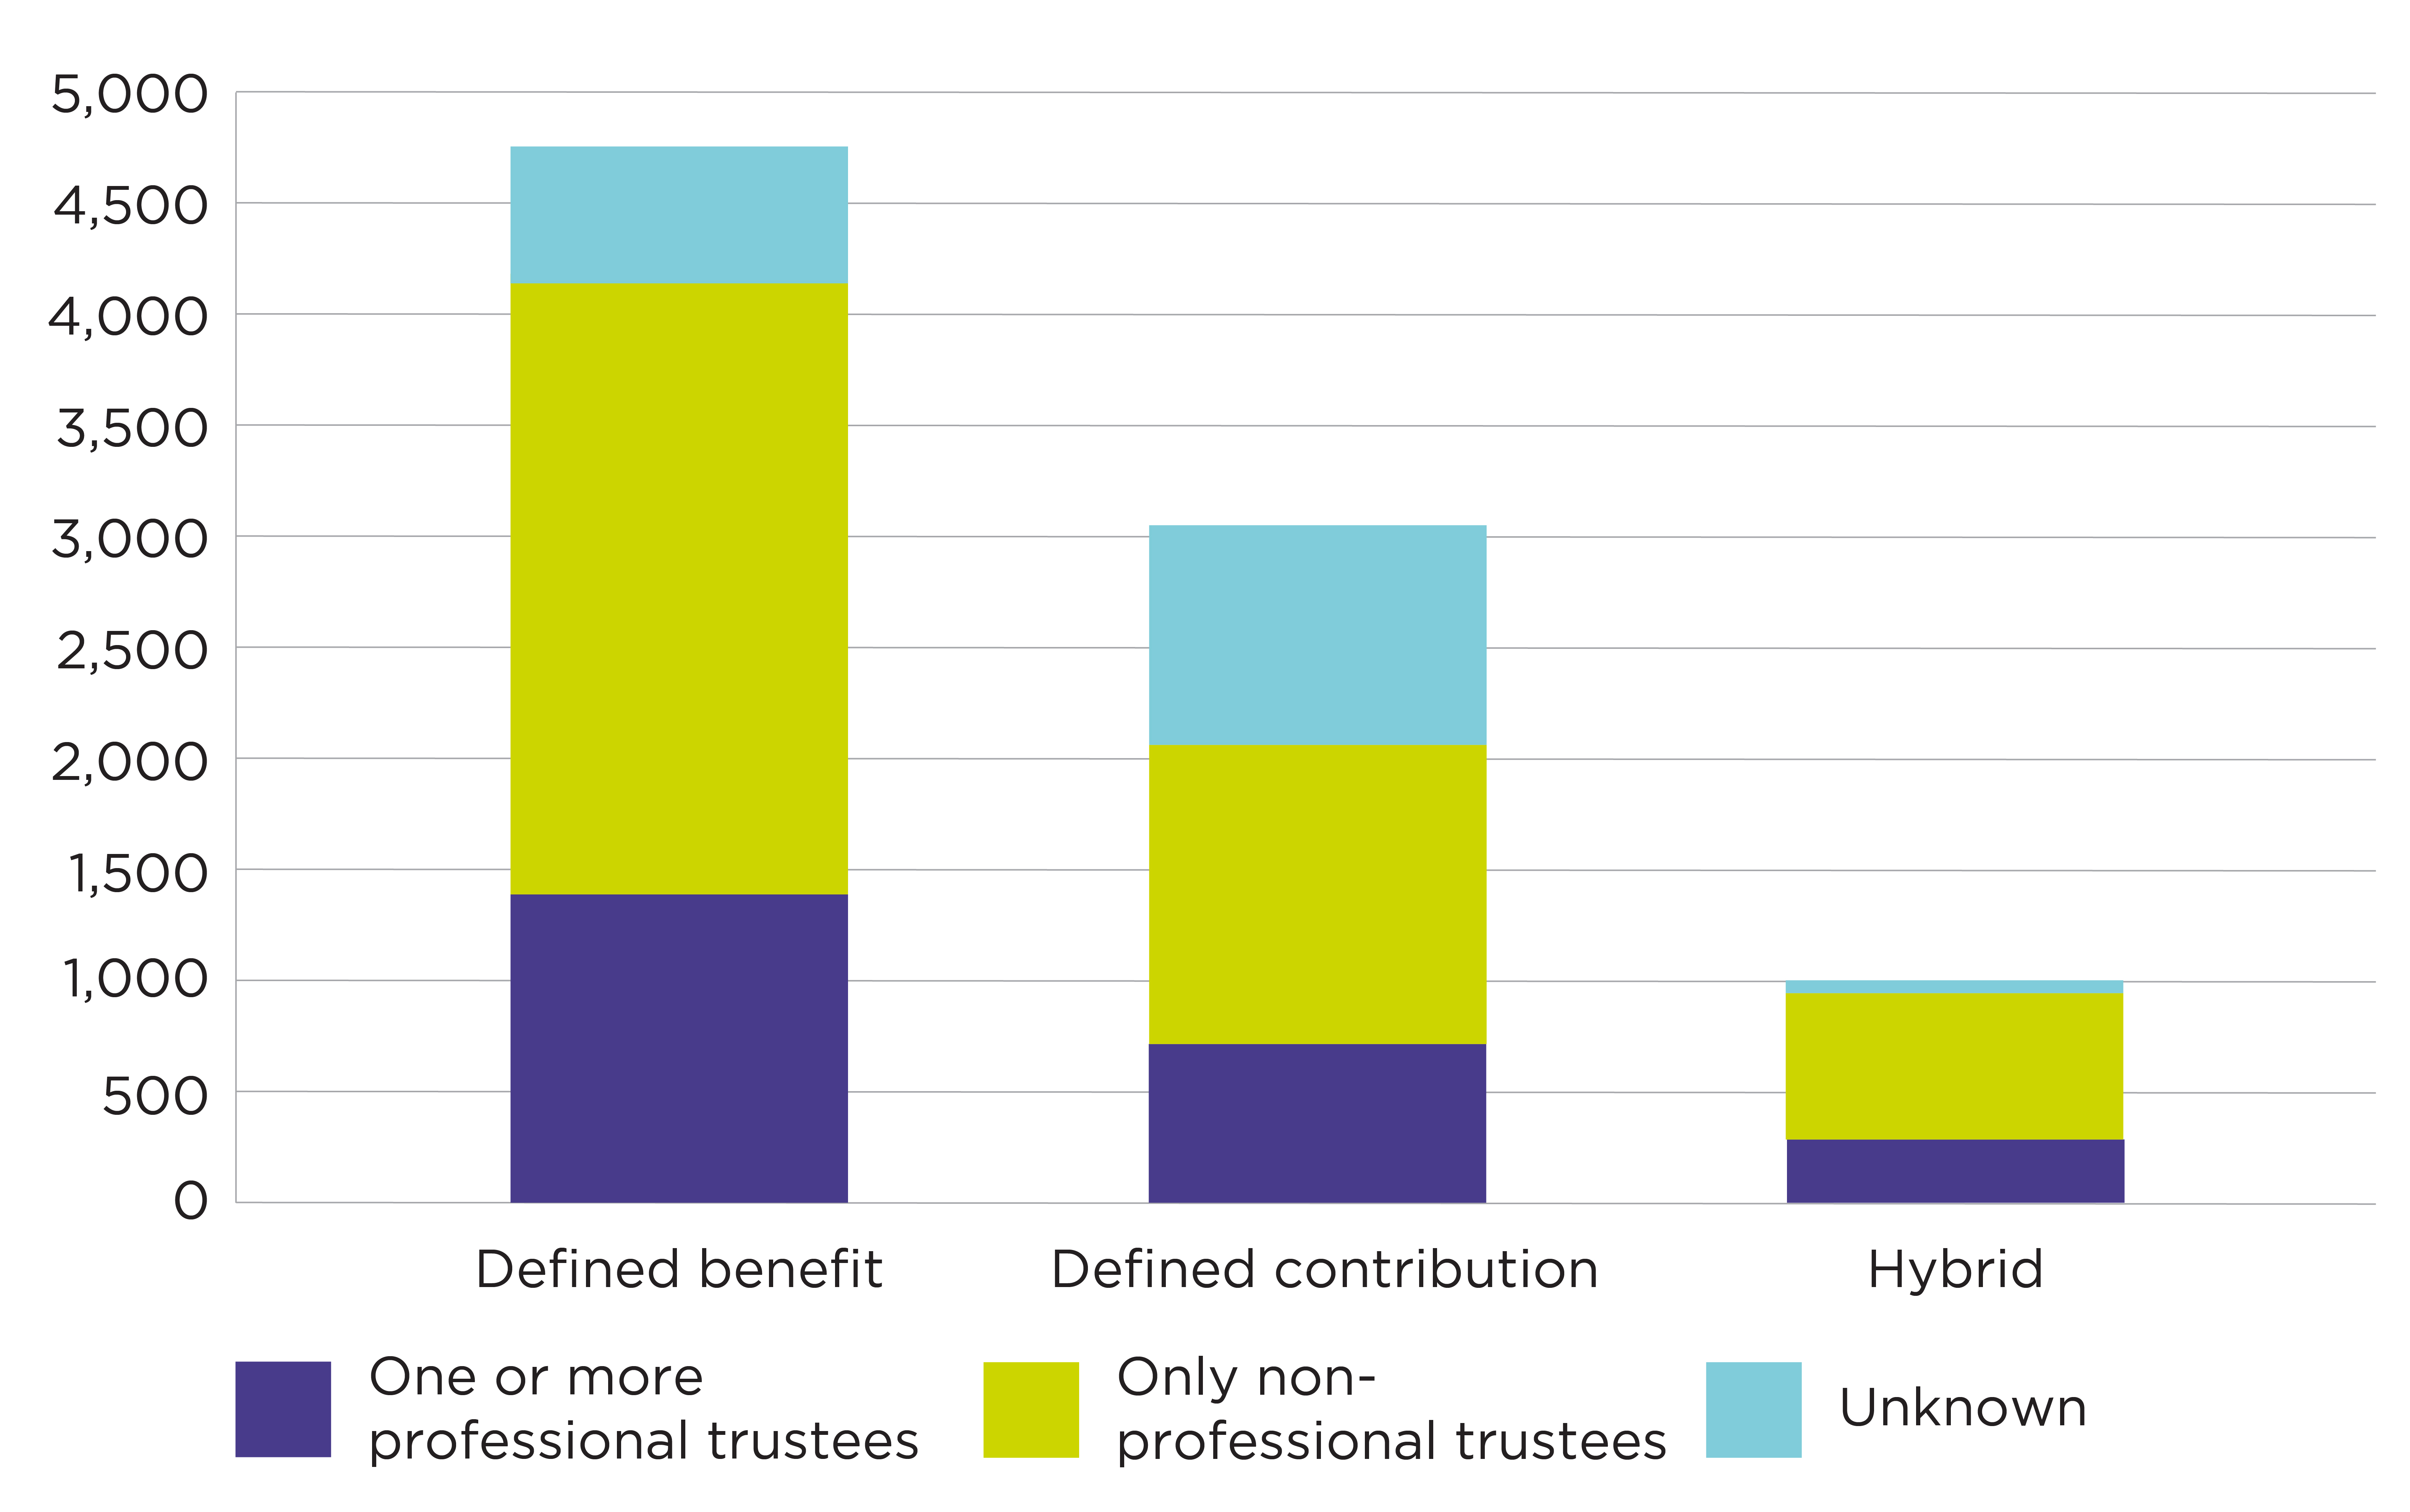 Graph showing schemes by the professional status of their trustee board